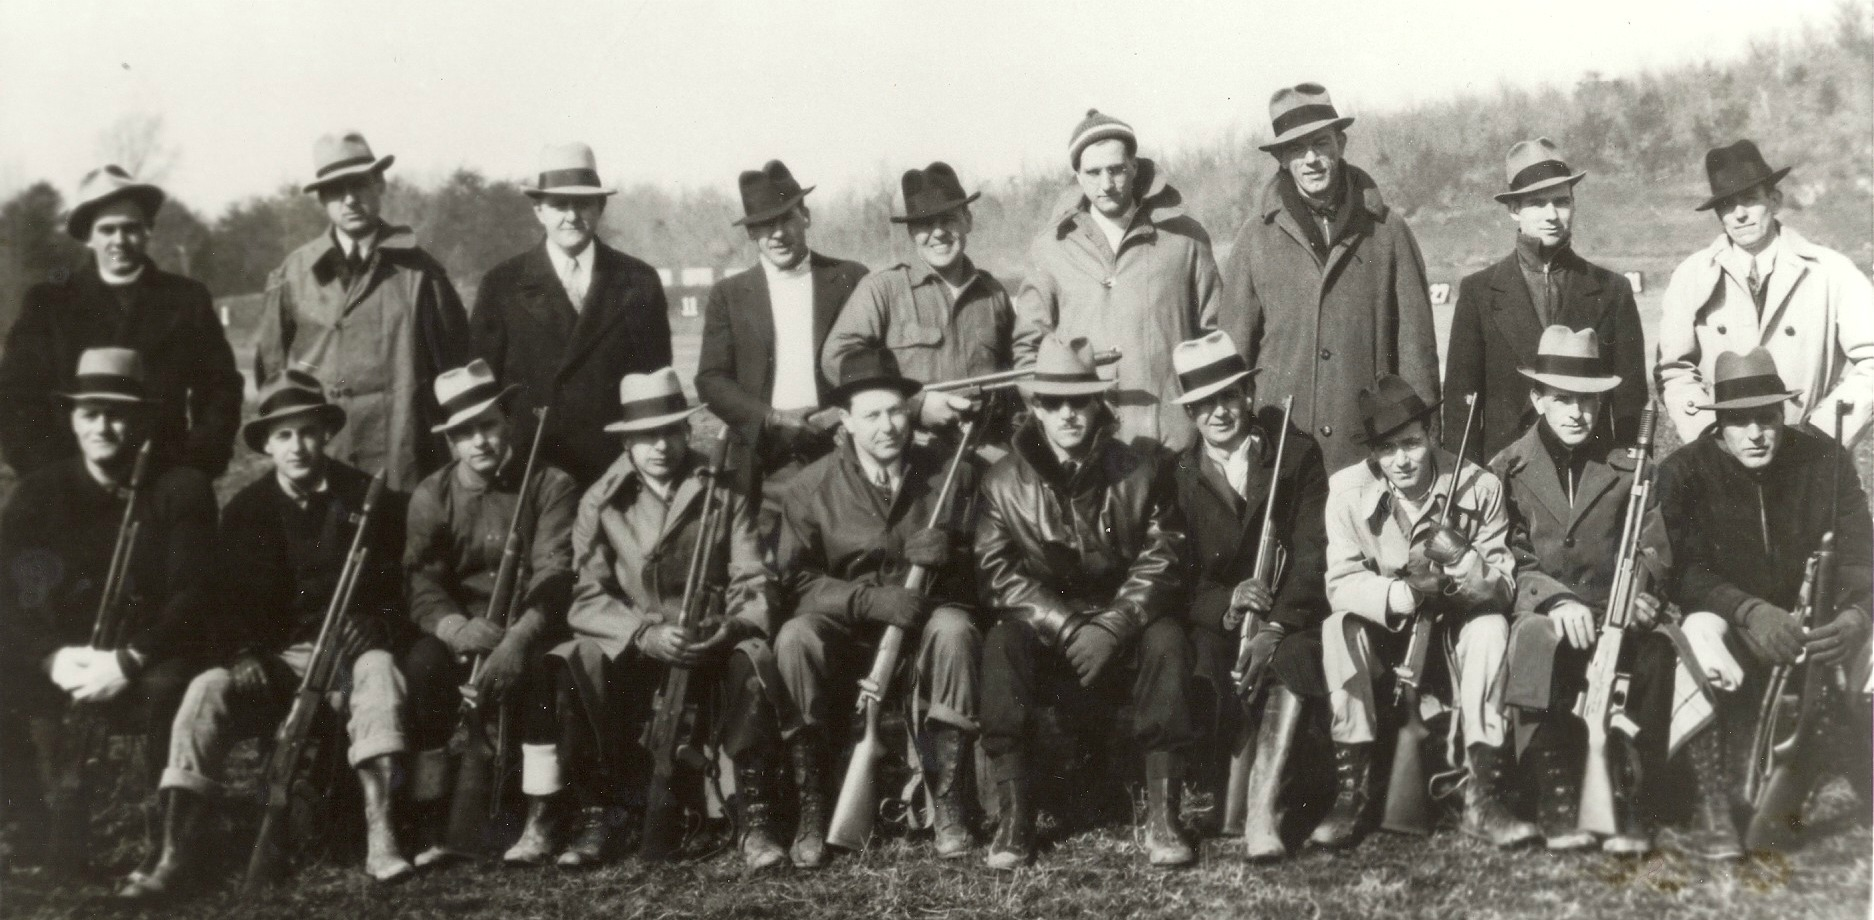 1935 Training Class Of SA Robert E. A. Boyle, SA Norman H. McCabe And Others    SA Boyle served the FBI from 1935-1946. Instructor Frank Baughman is seen here sitting in the bottom row, leather jacket, sunglasses. SA Boyle, wearing a white fedora/dark band is seated immediately to Baughman's left side. Also identified in the photo is SA Norman H. McCabe, standing in rear, 3rd from the right. SA Robert Boyle's son, Mike, is now a retired FBI Agent and Mike Boyle's son, Sean, is currently a Special Agent Supervisor with the FBI. (photo courtesy retired SA Mike Boyle as given to him by SA McCabe. Others unidentified. )